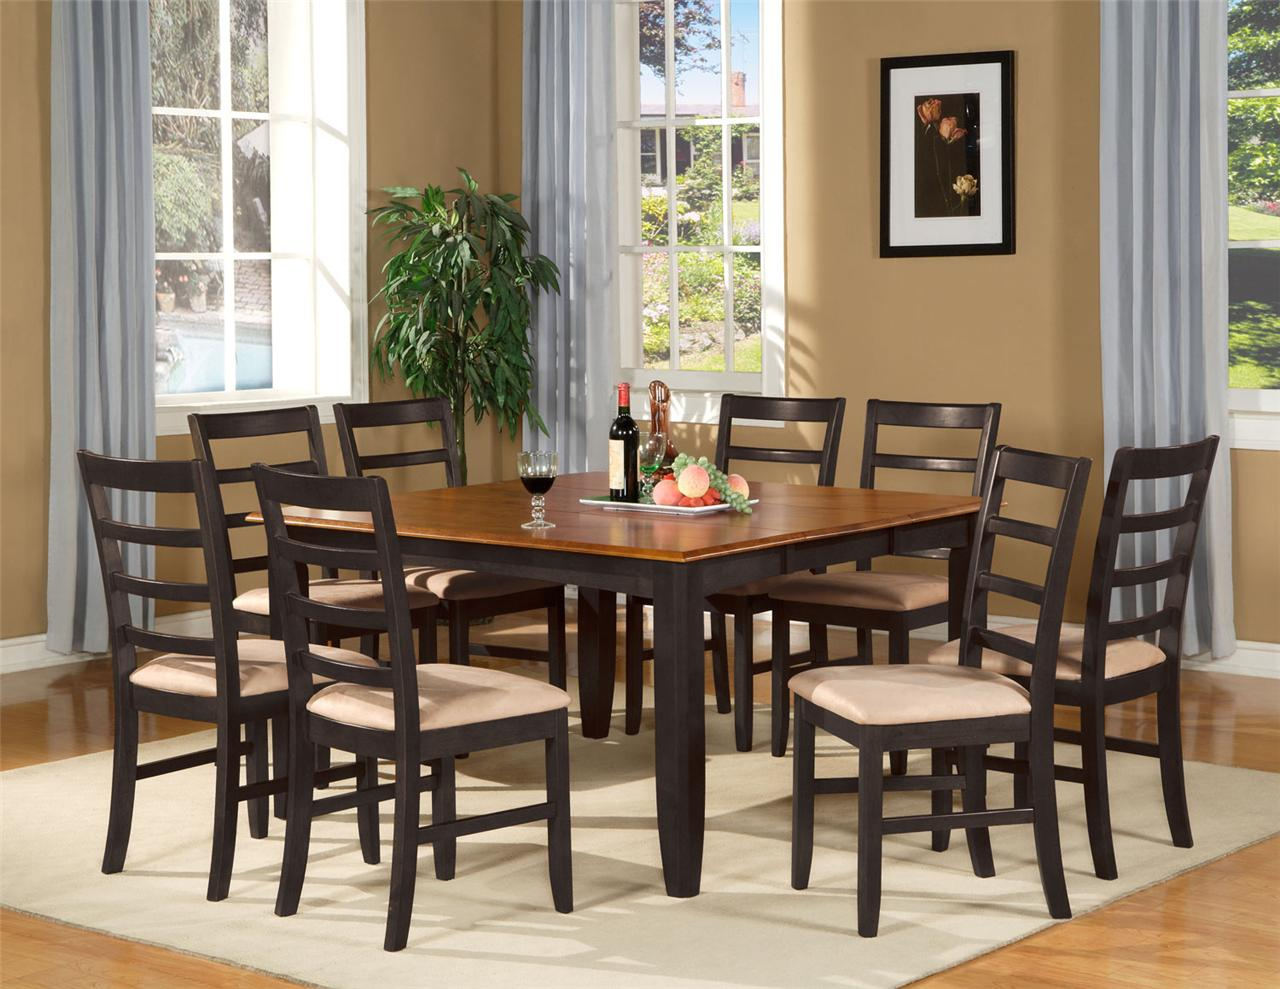 Square Dining Room Tables That Seat 8 9 Pc Square Dinette Dining Room Table Set And 8 Chairs Ebay